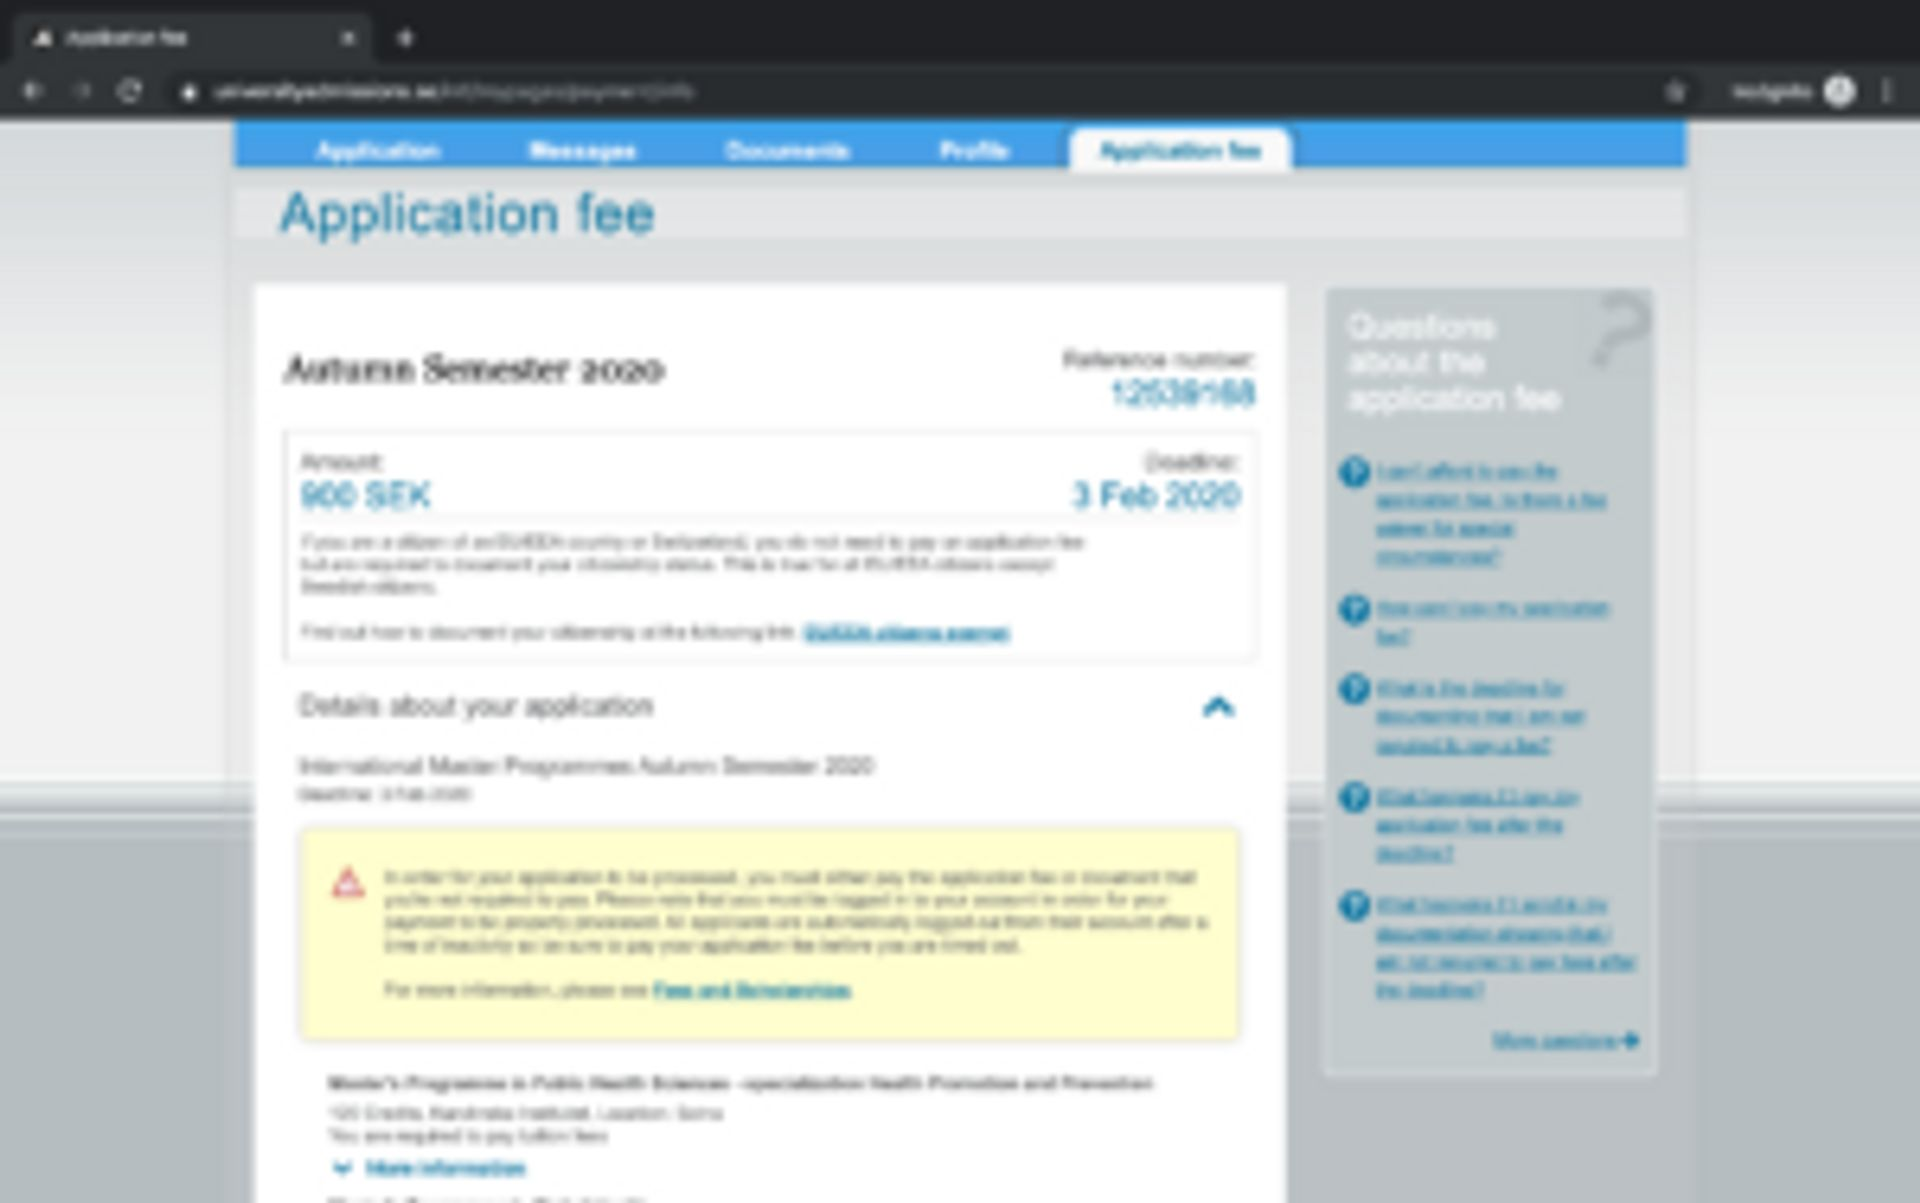 Screenshot of webpage with application fee information.